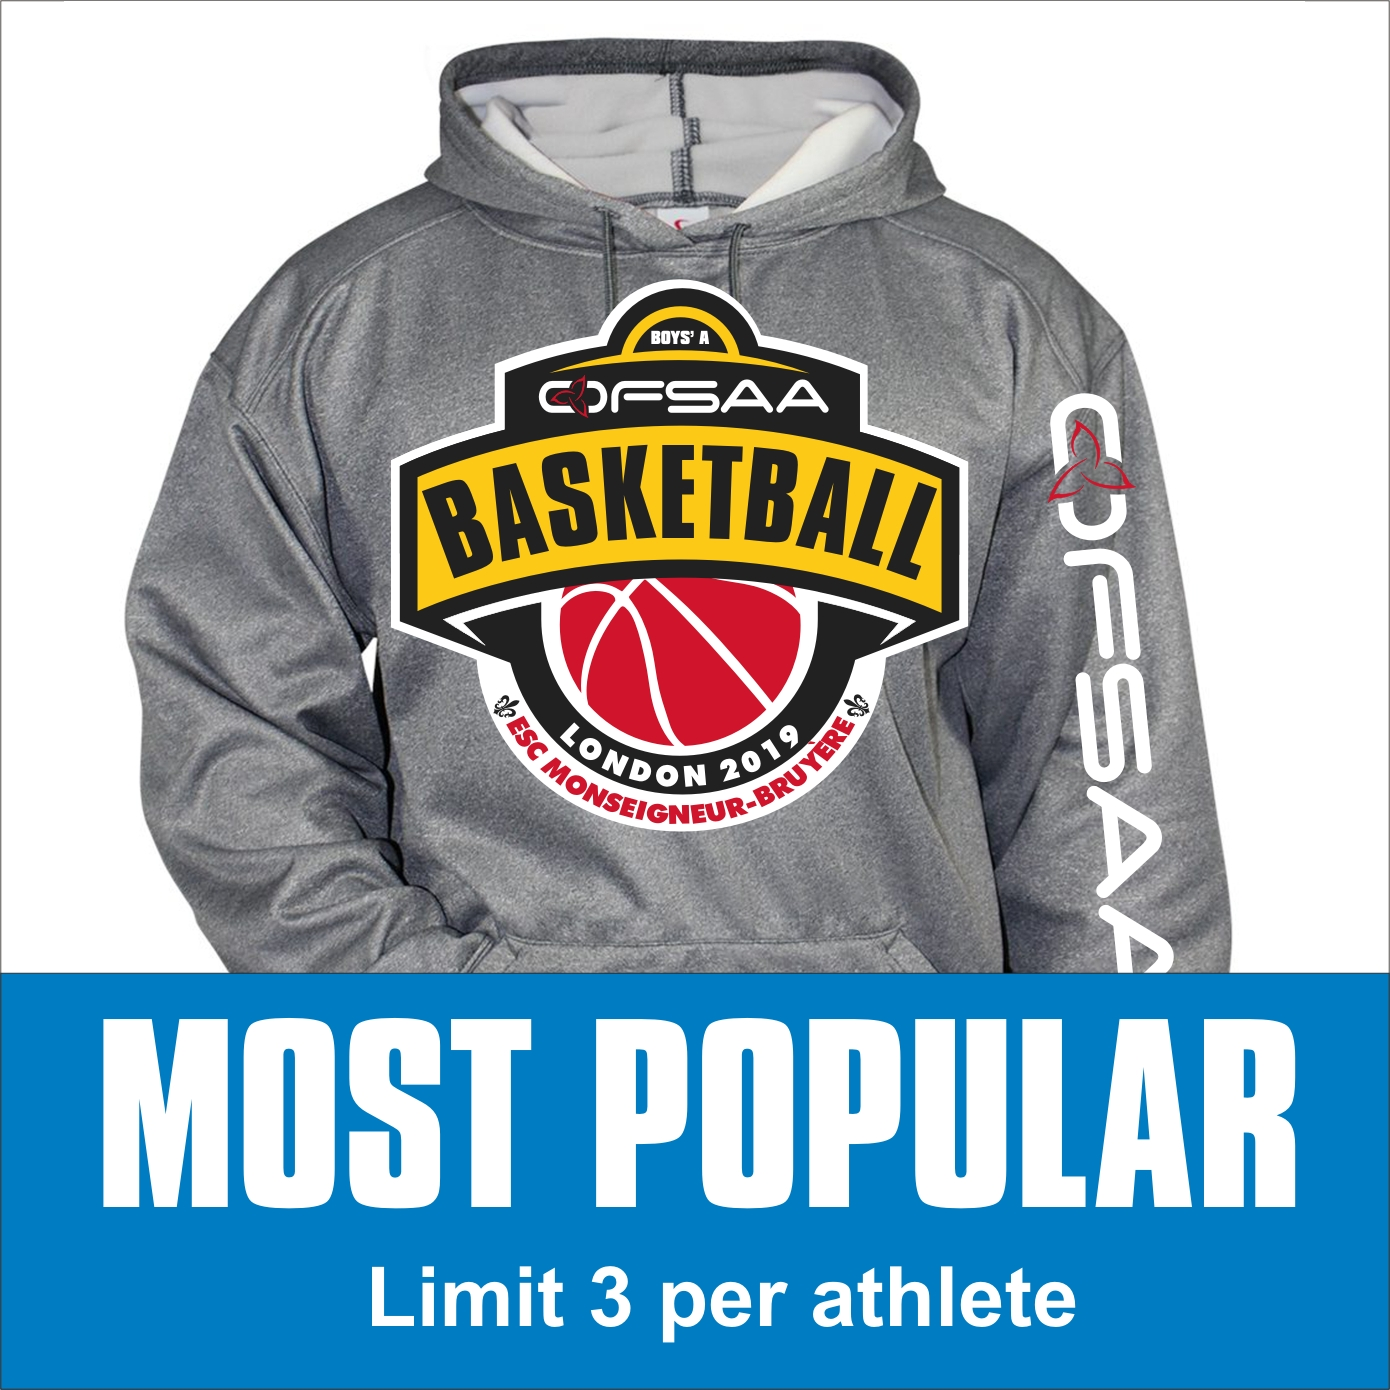 2019 Boys A Basketball Hoodie single grey.jpg